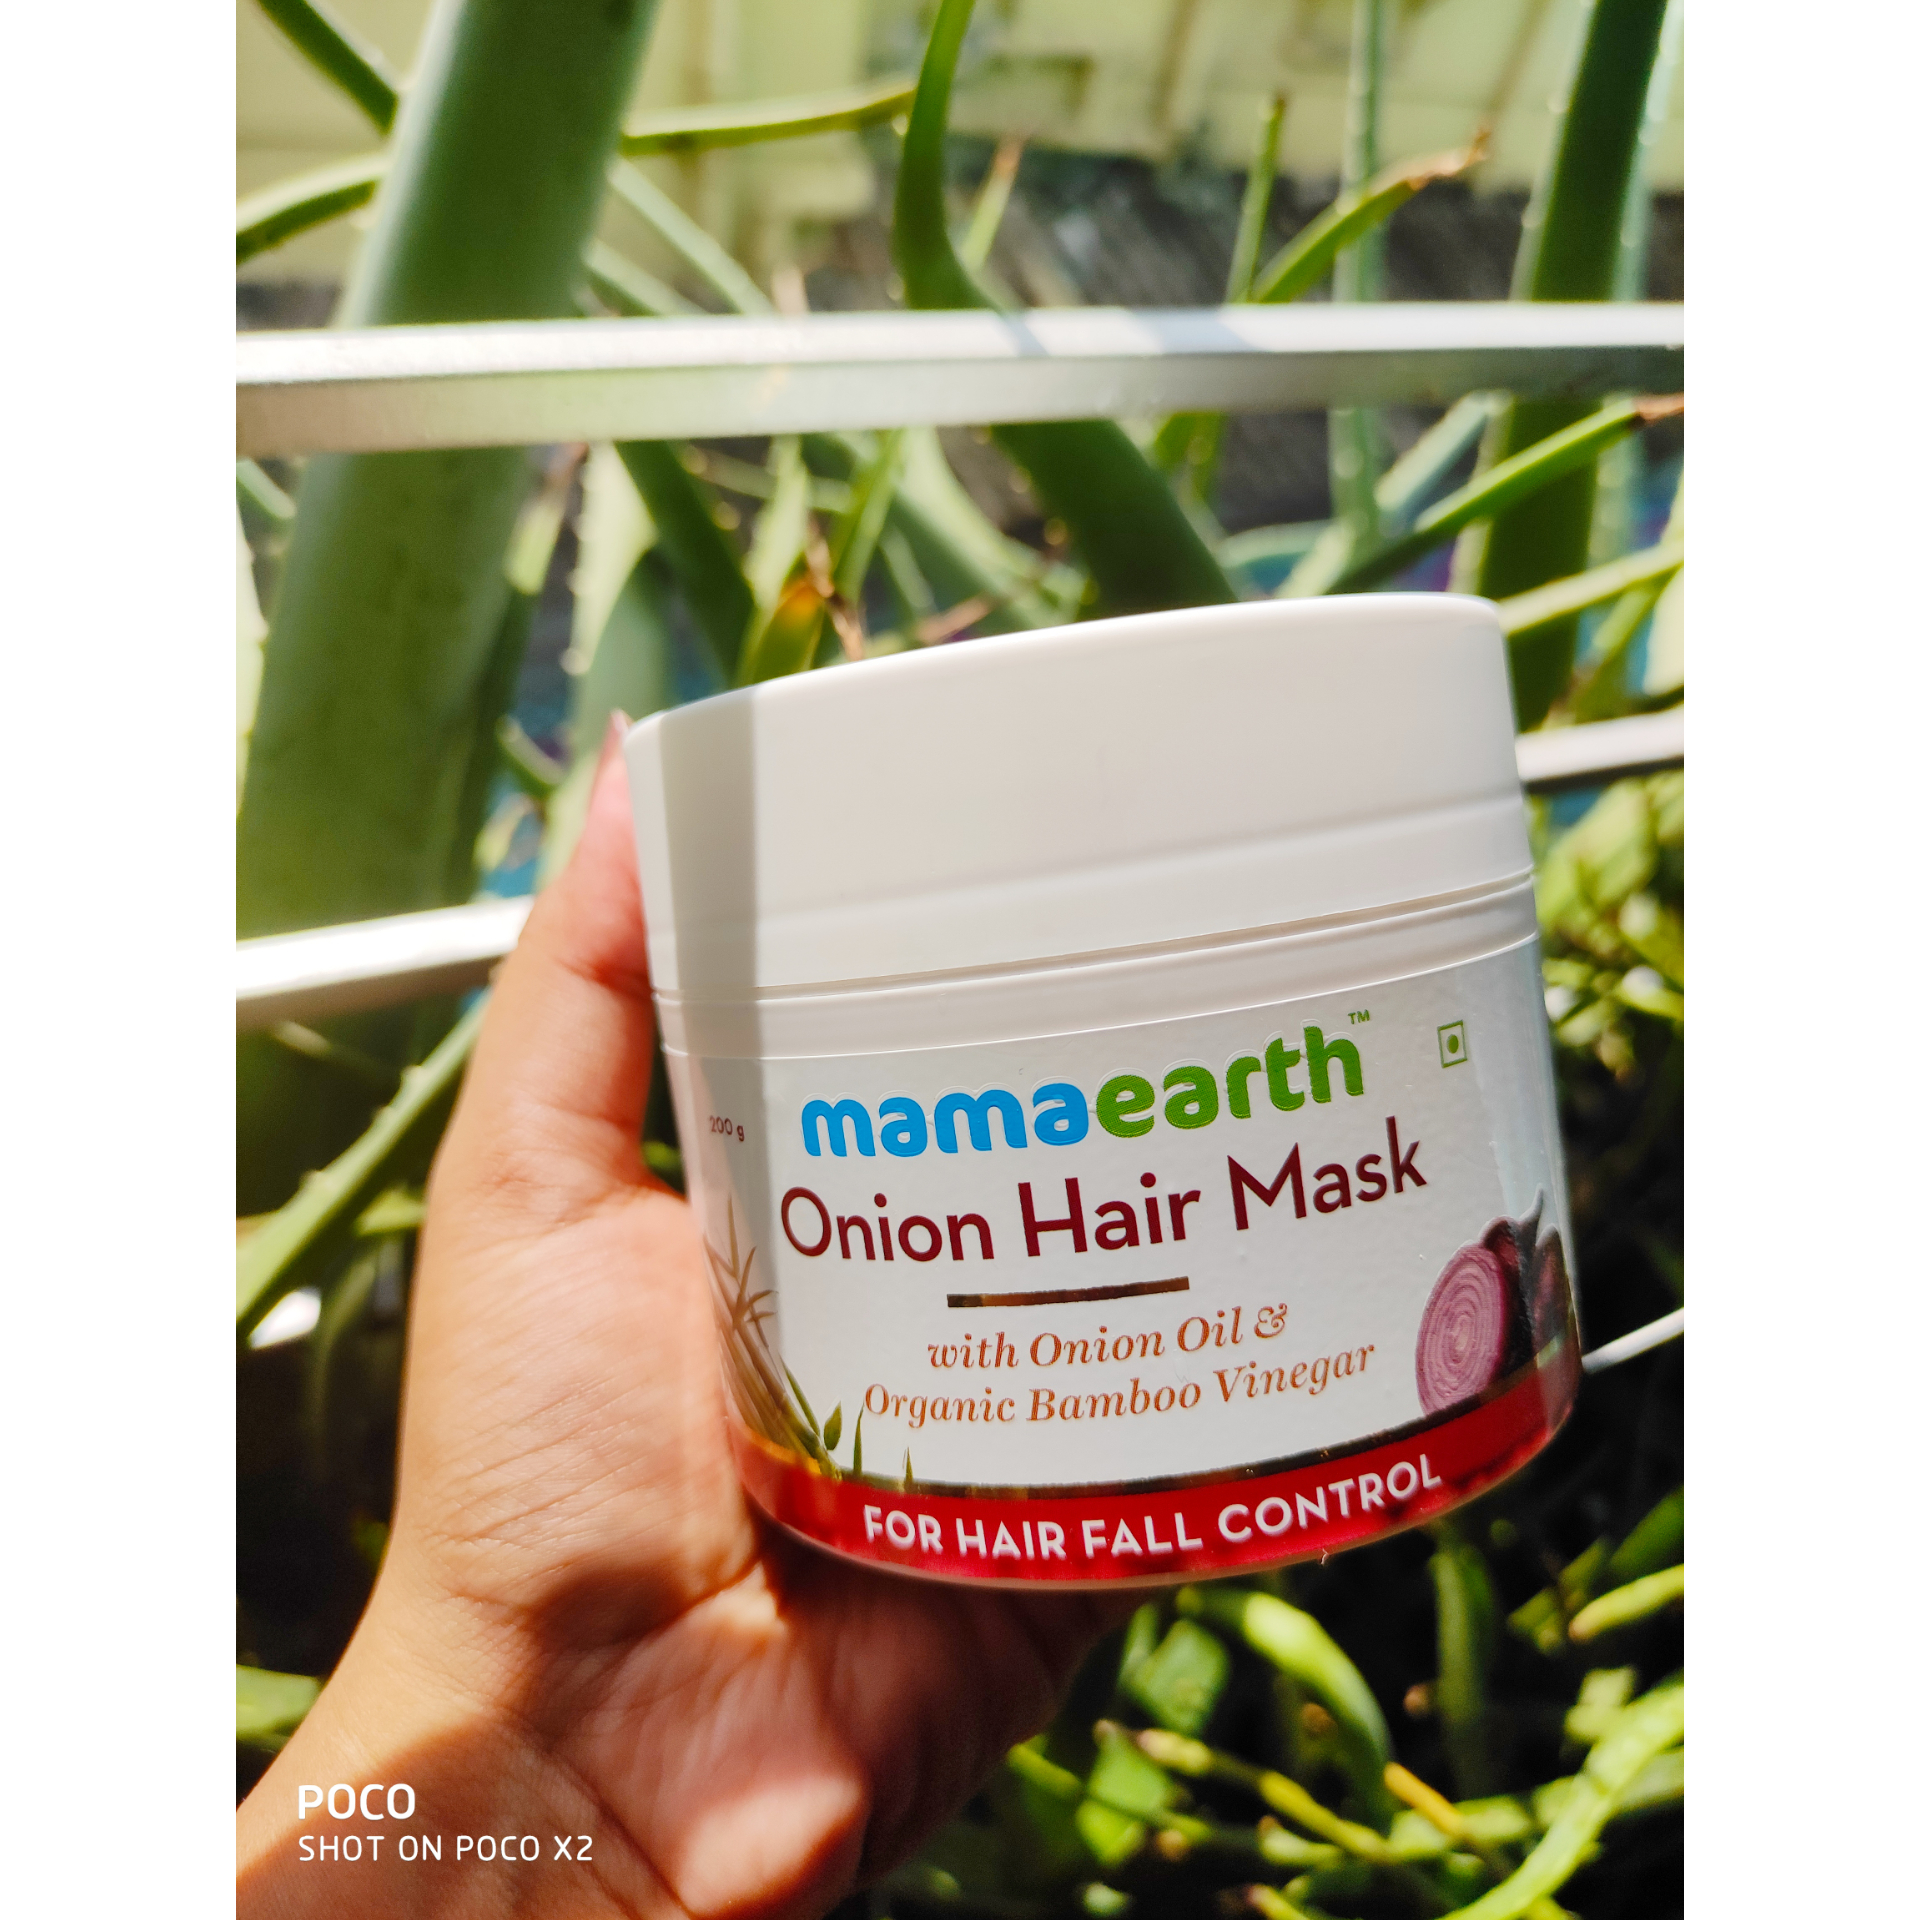 MamaEarth Onion Hair Mask-Smoother and stronger locks-By subhojita_saha